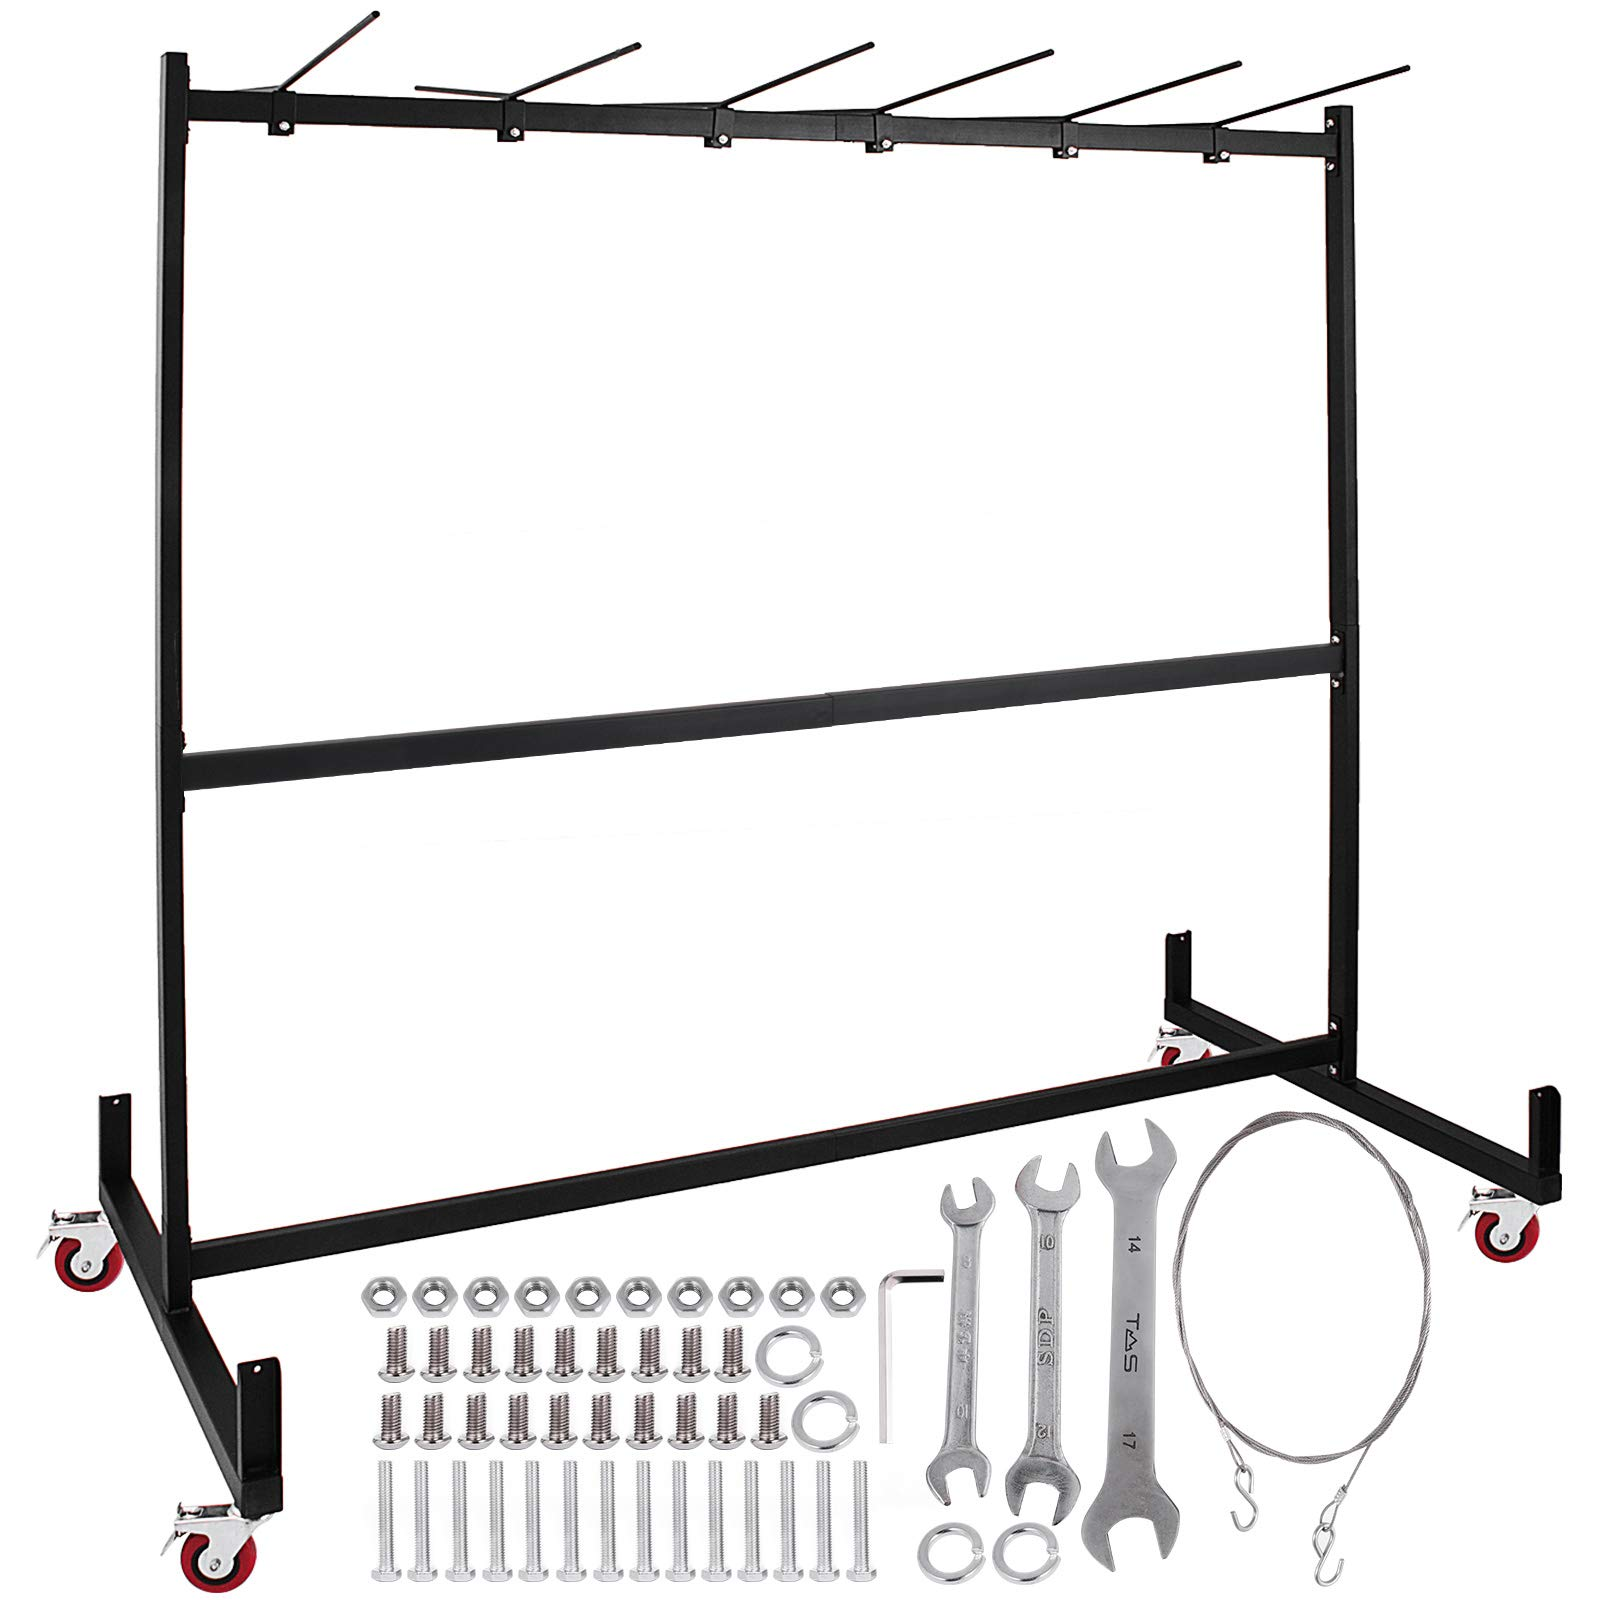 Happybuy Folding Chair Rack Dolly Cart with Locking Casters Transport Max 30 Chairs 12 Tables Heavy Duty Hanging Foldable Seat and Table Combo Trolly Rack Steel Folding Chair Cart by Happybuy